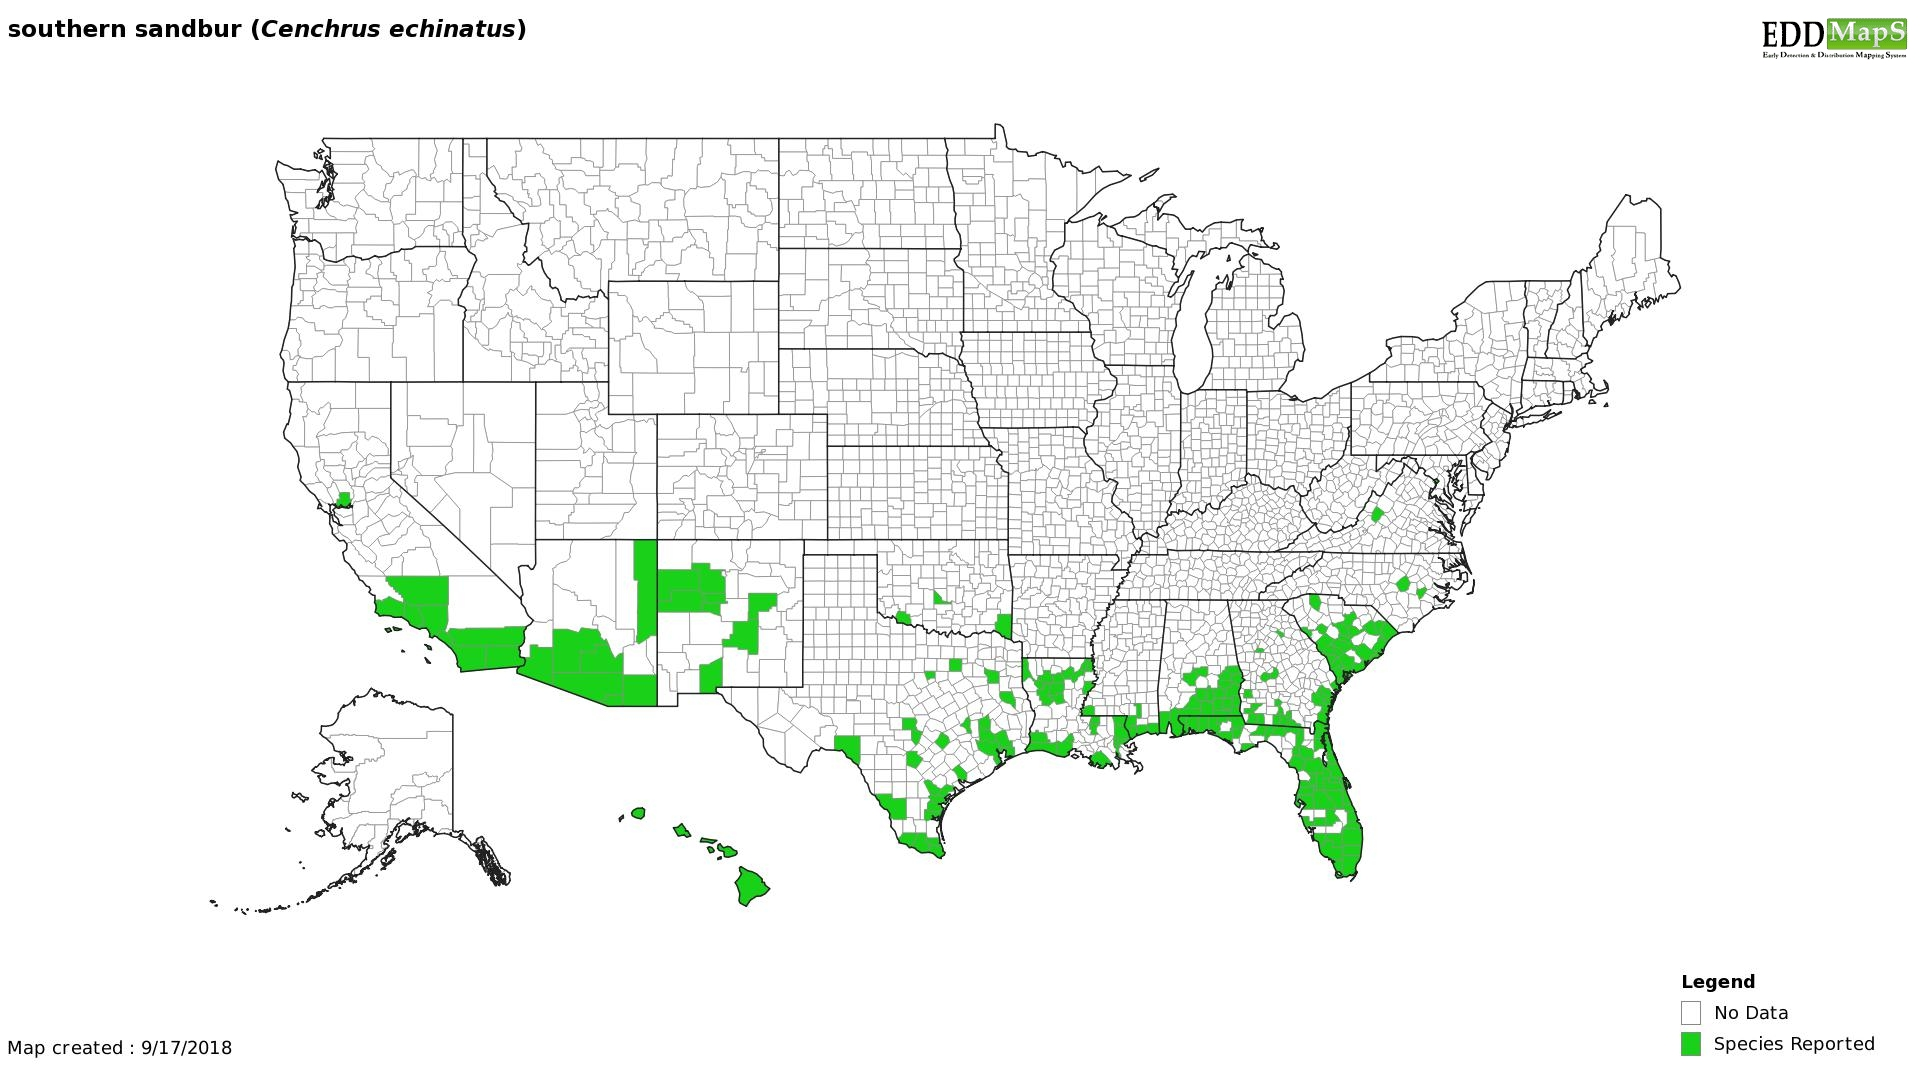 Southern sandbur distribution - United States